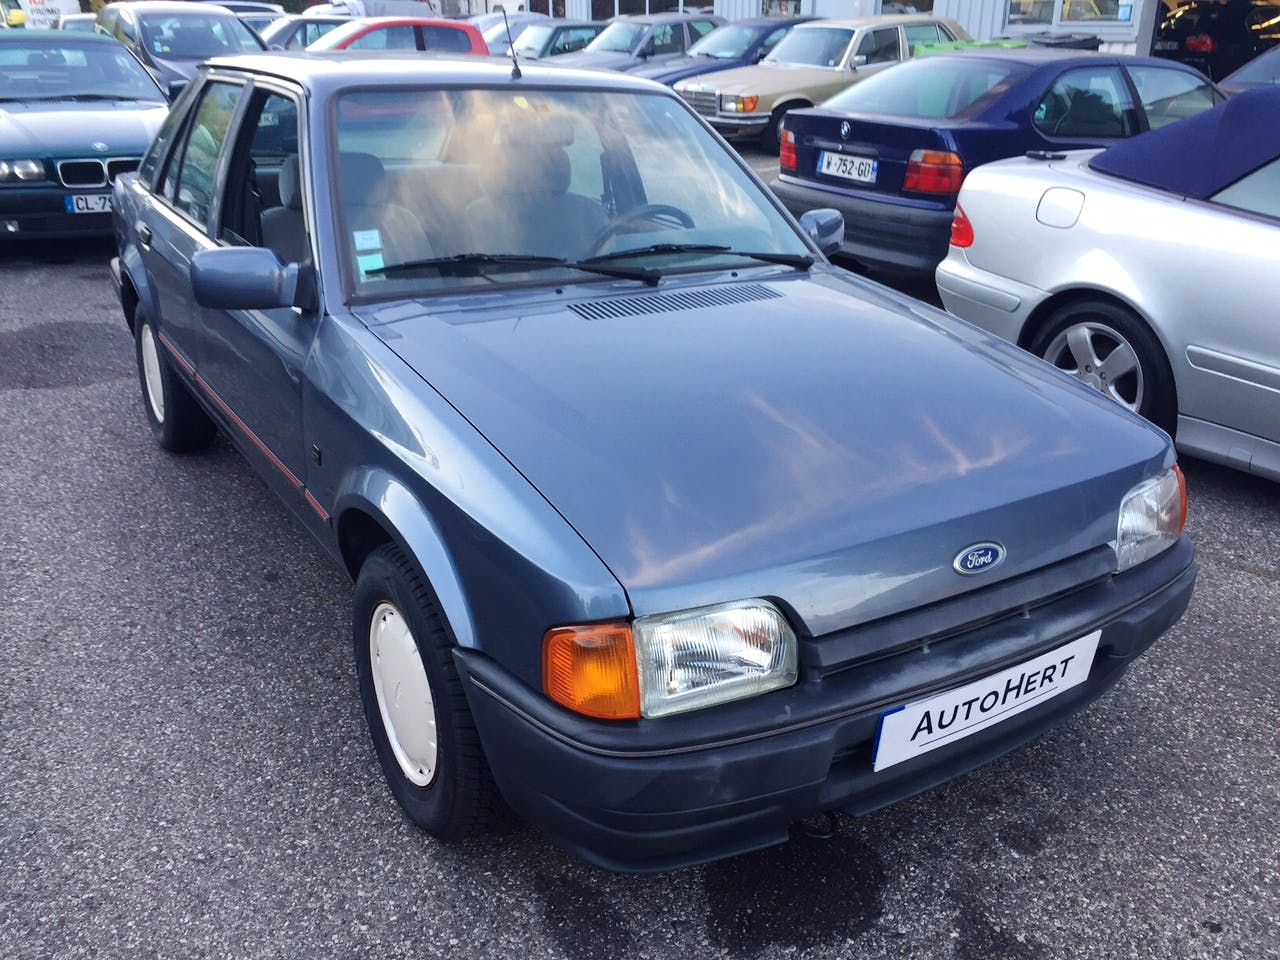 Ford Escort 1.3, 1990, Essence